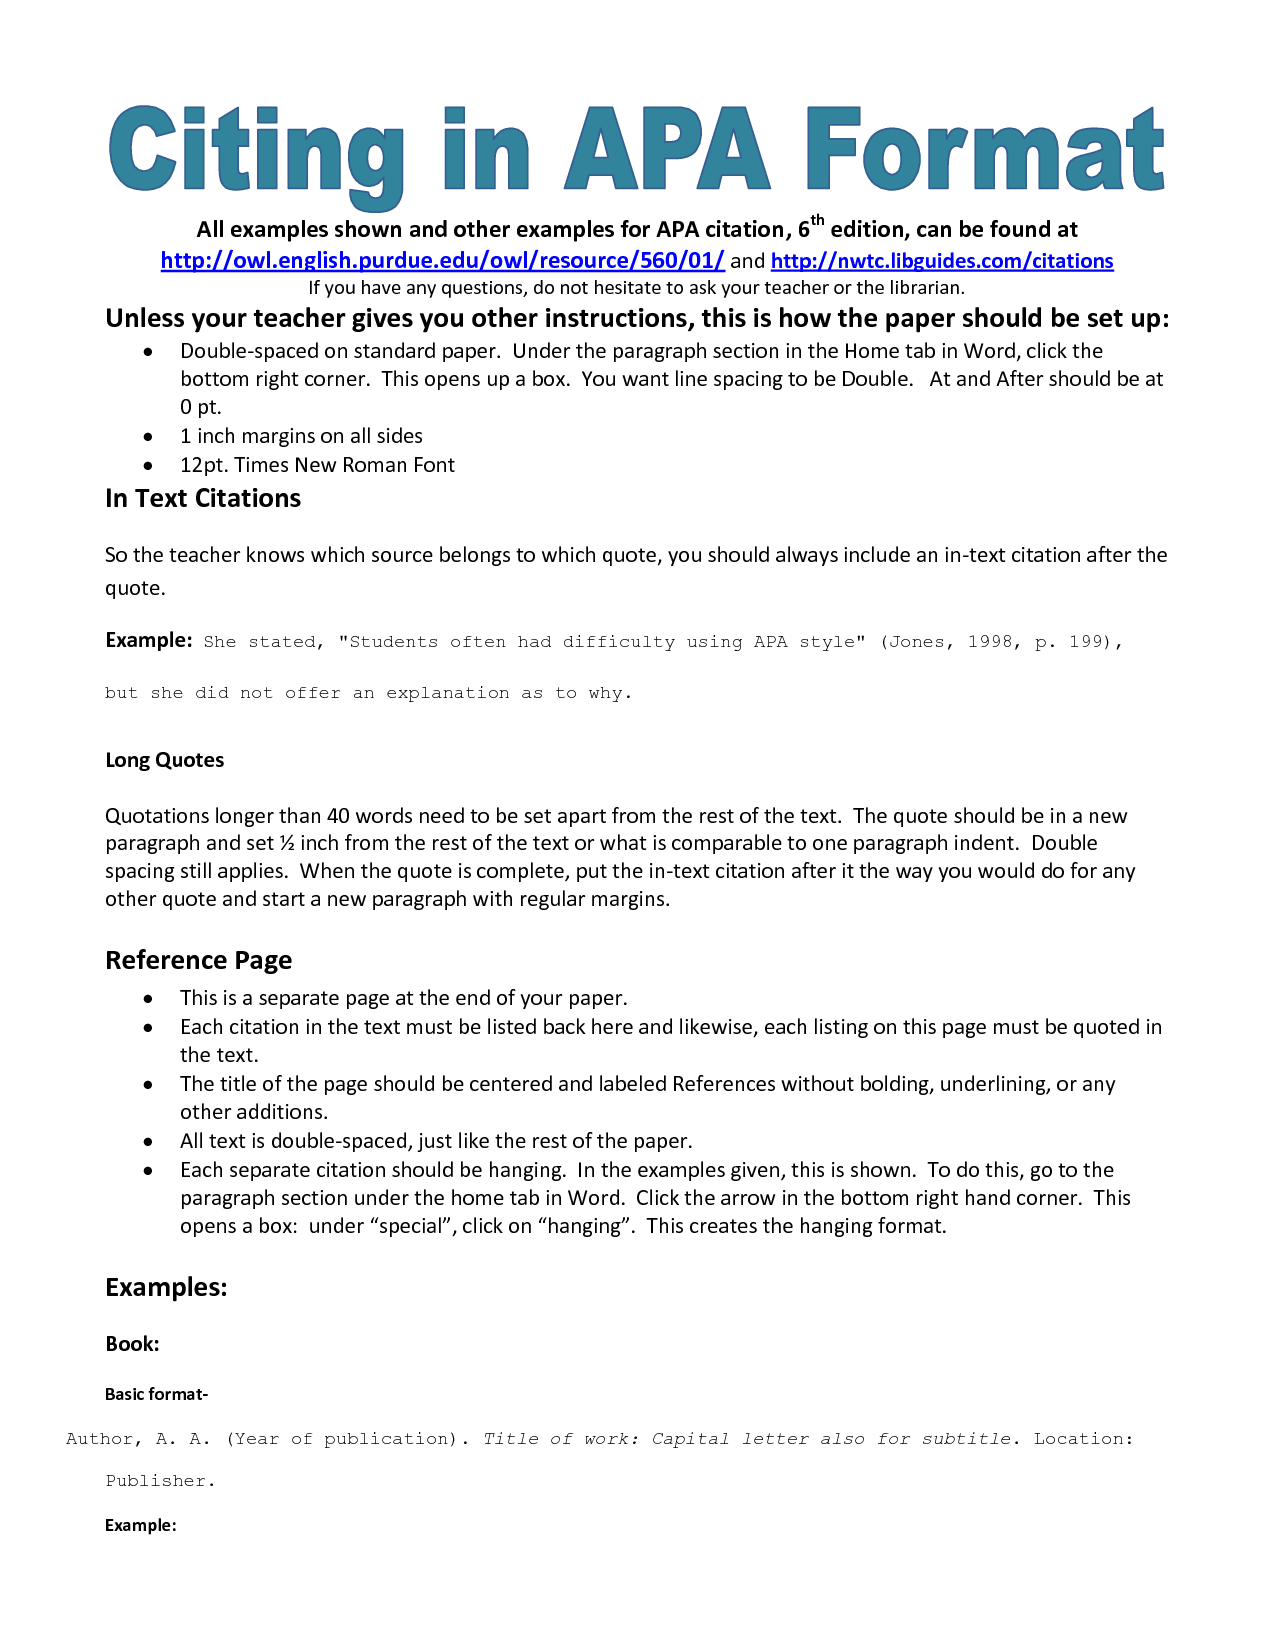 Essay Help Service  Best Ideas About Apa Style Reference Apa Style  Best Ideas About Apa  Style Reference Cover Letter Apa Essay Papers  Ielts Essay Topics also What Is Cause And Effect Essay Apa Format For An Essay  Best Ideas About Apa Style Reference Apa  Profanity Essay